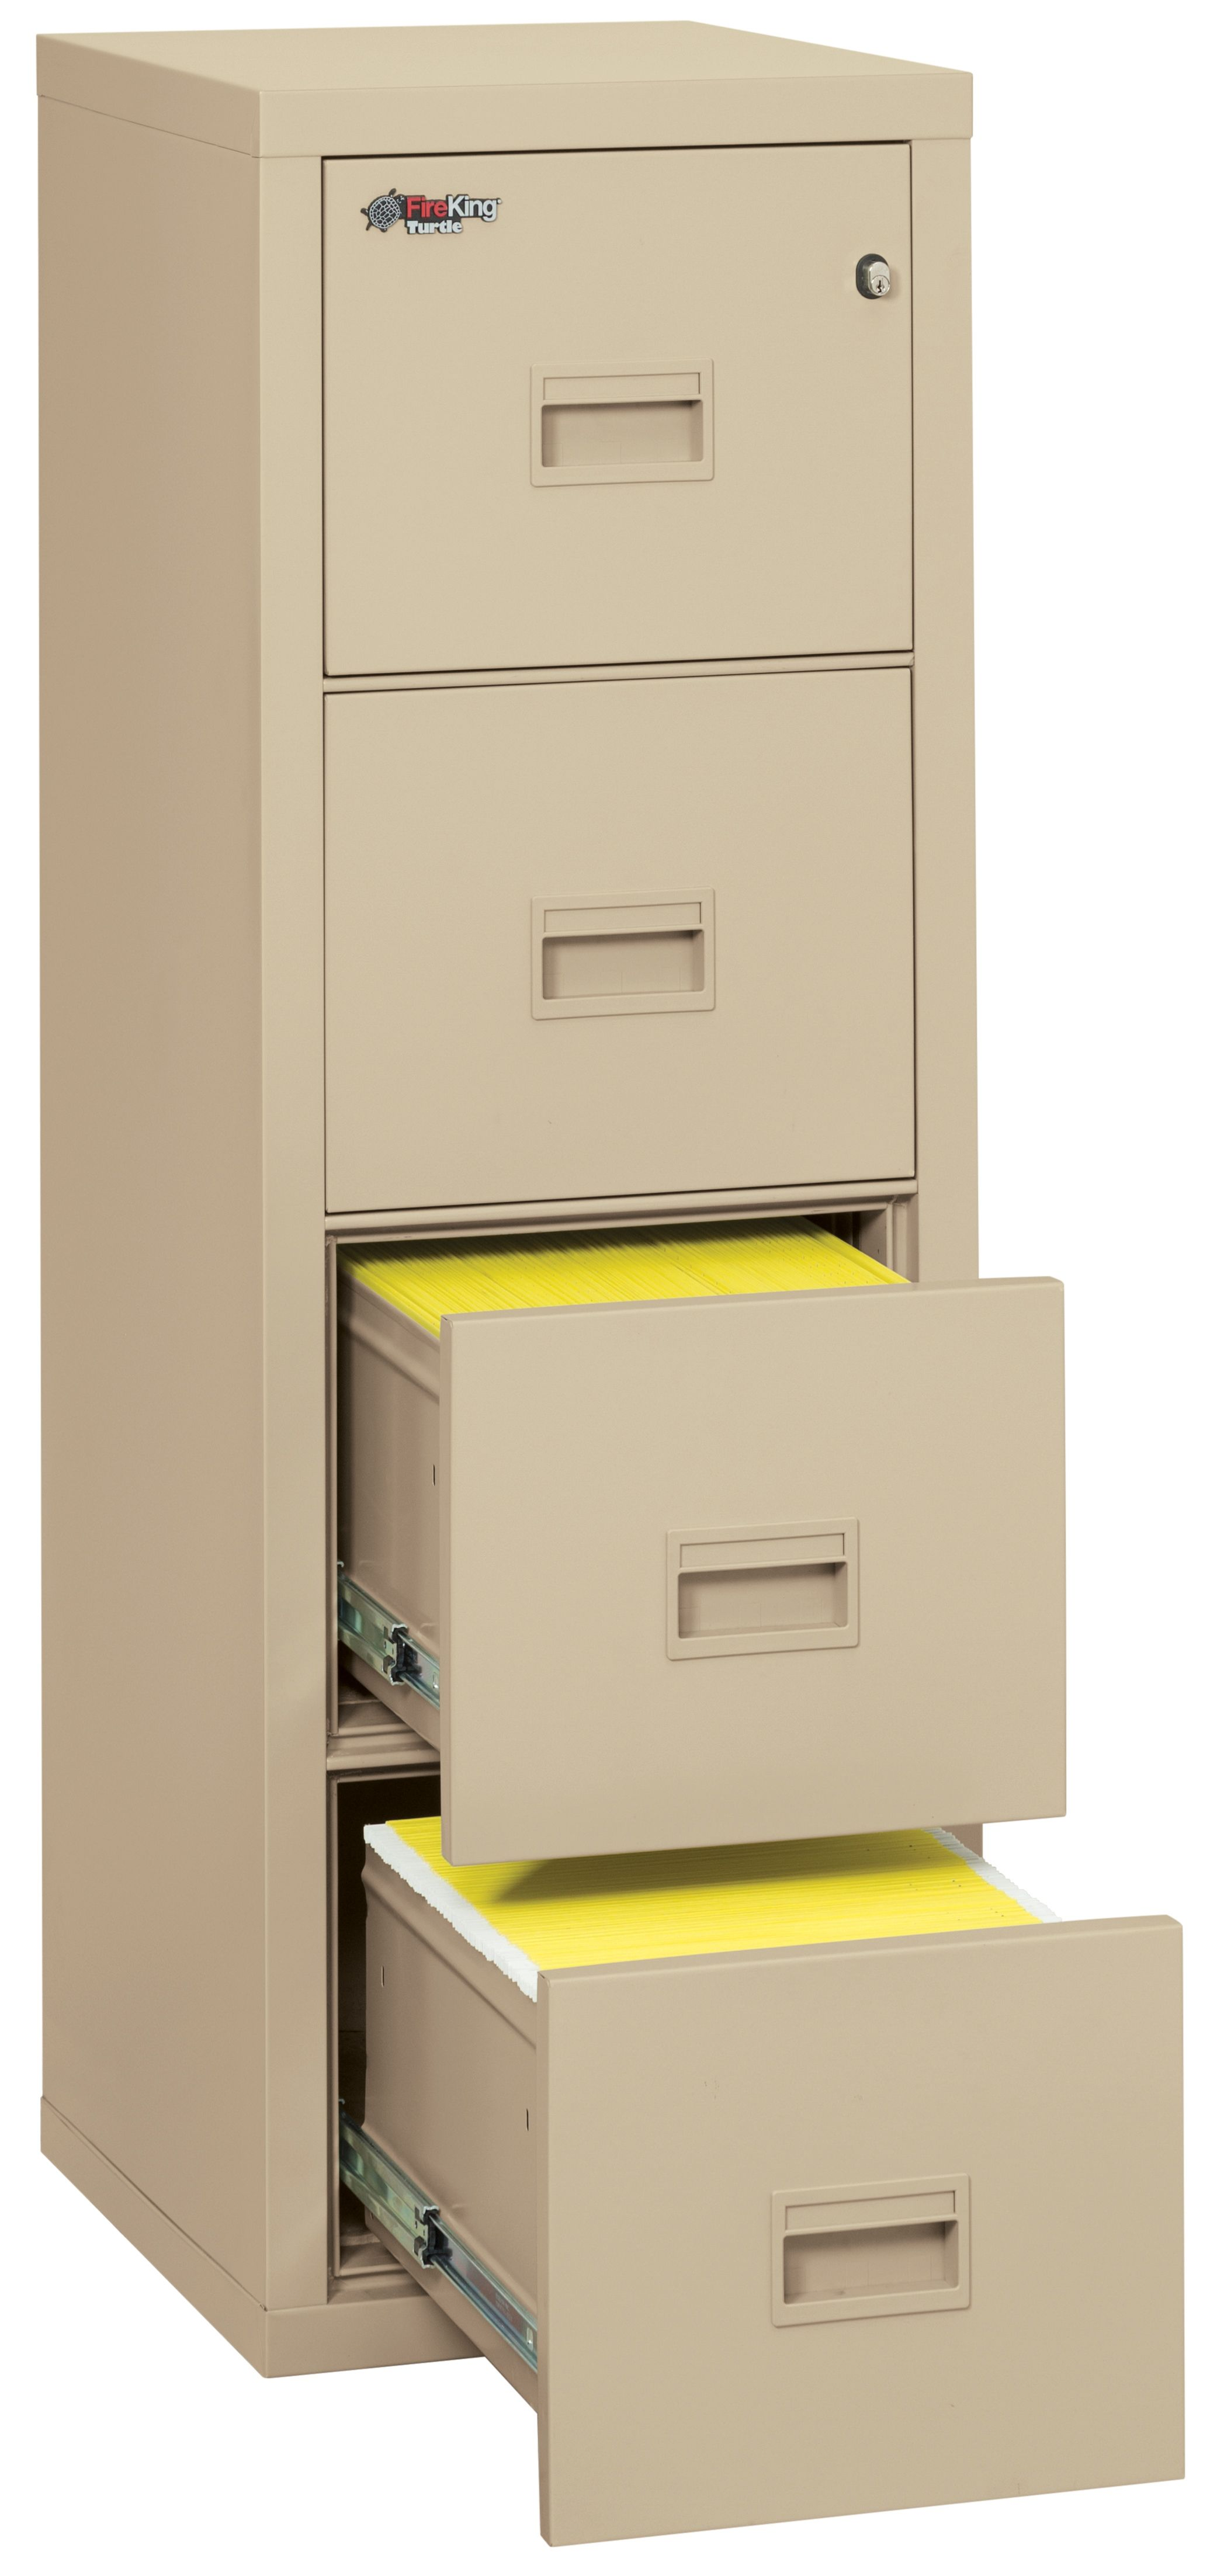 Filing Cabinet Key Hangers advice tips